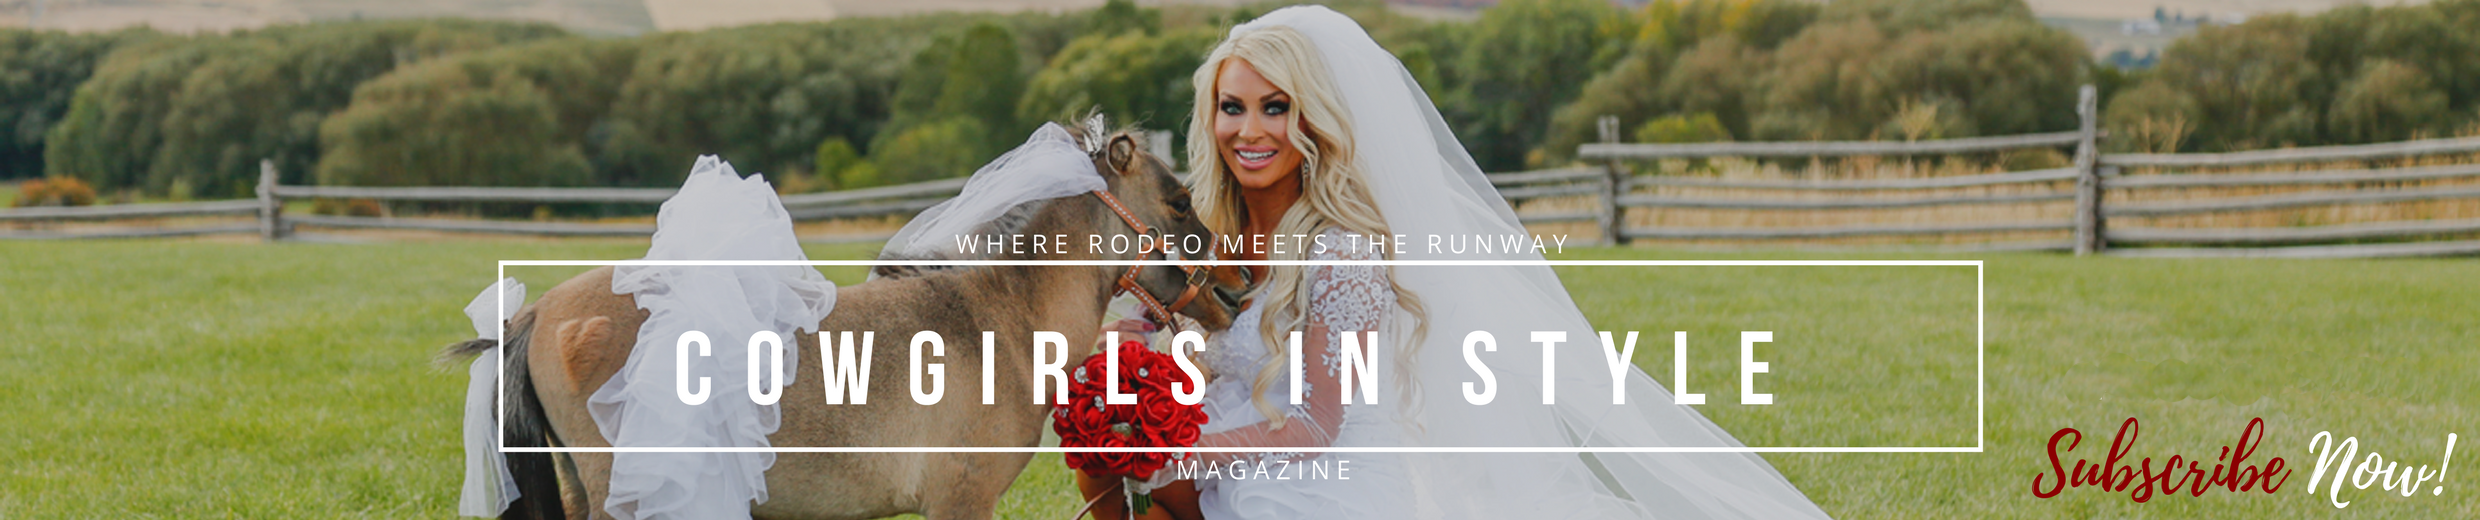 August 2018 - Cowgirls In Style Magazine